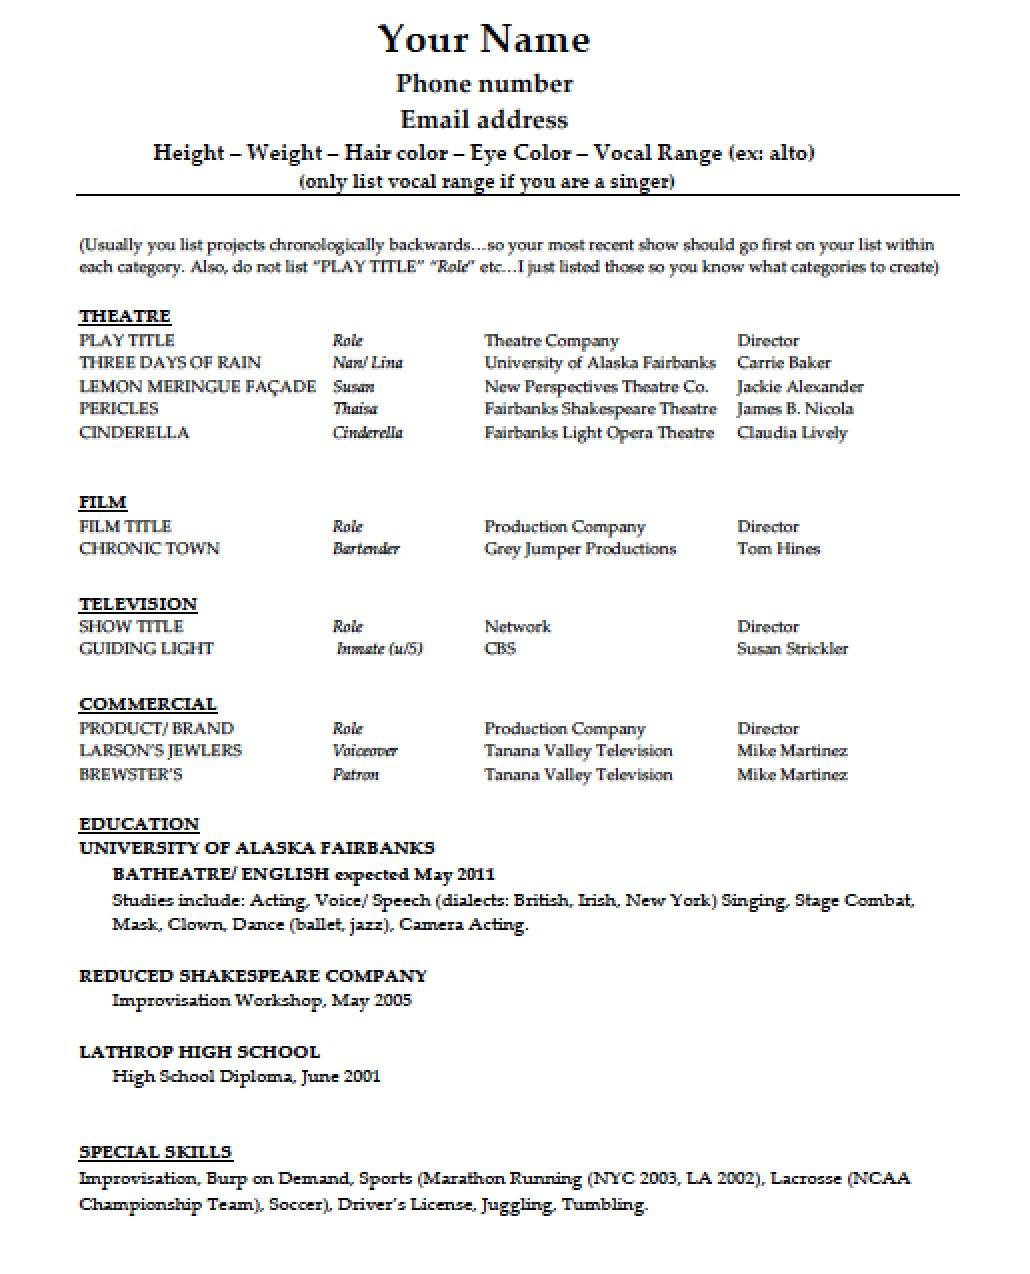 Partial Differential Equations of Parabolic Type resume dancer